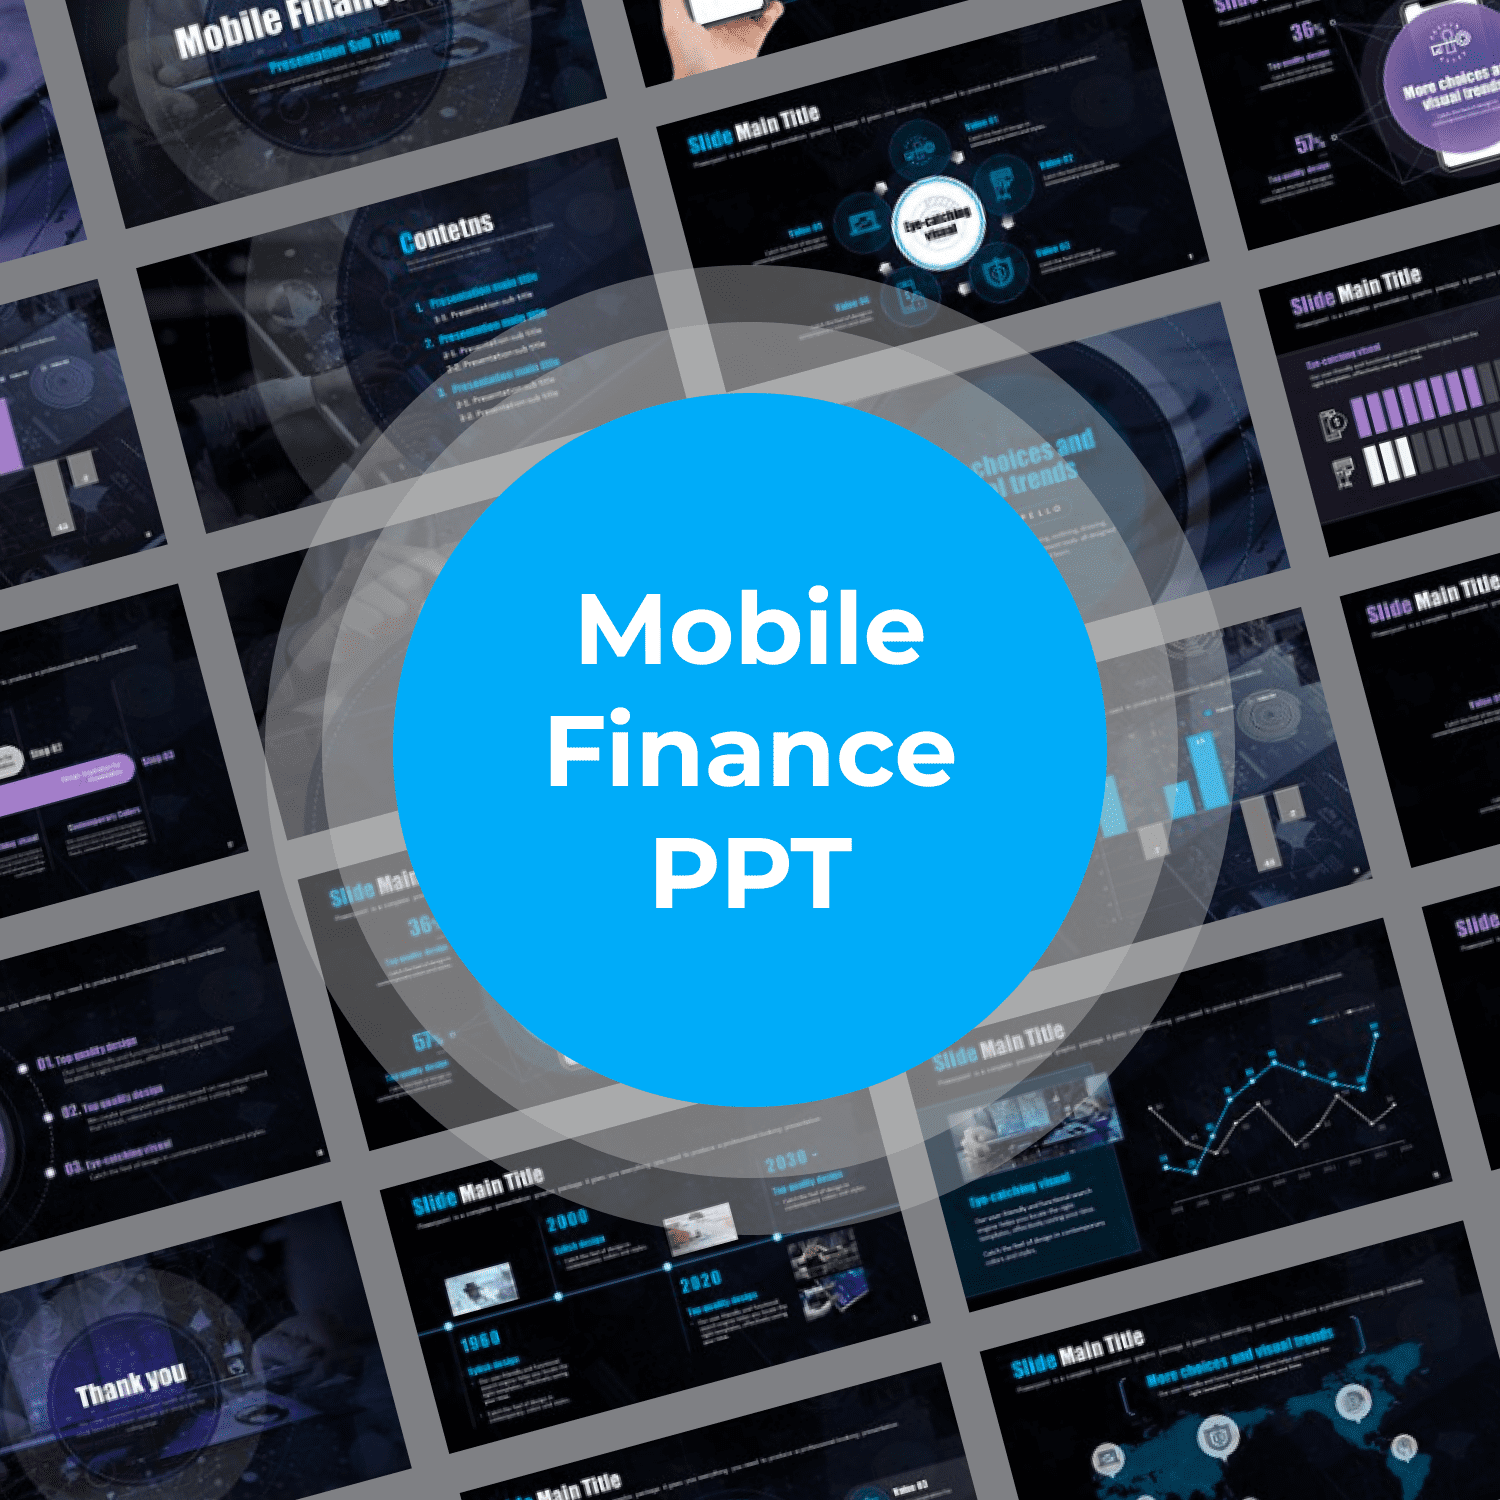 Mobile Finance PPT main cover.